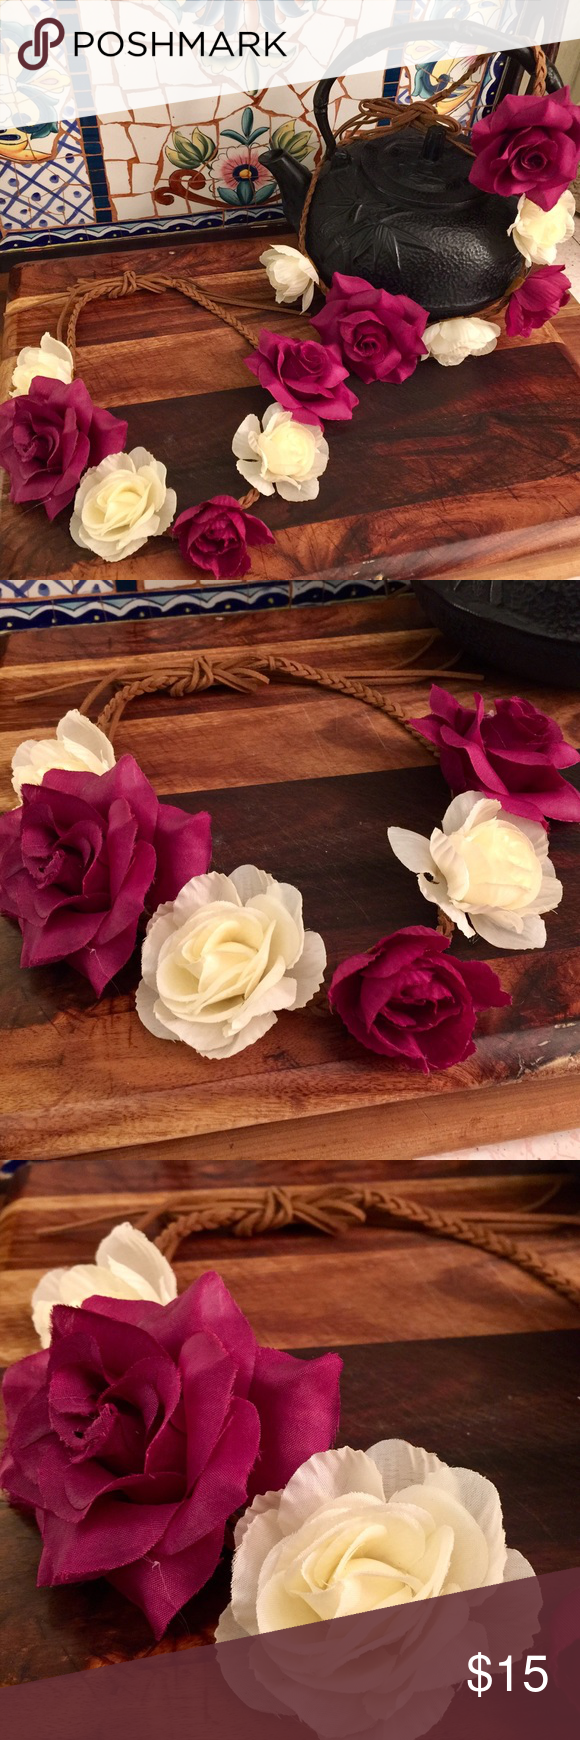 Floral Head Band Wine & Roses Let your inner Boho girl shine! These beautiful flowered head bands are on braided suede strips that tie and will adjust to any head size. Brand new! Wear them around your head as a crown wreath or as a head band. Accessories Hair Accessories